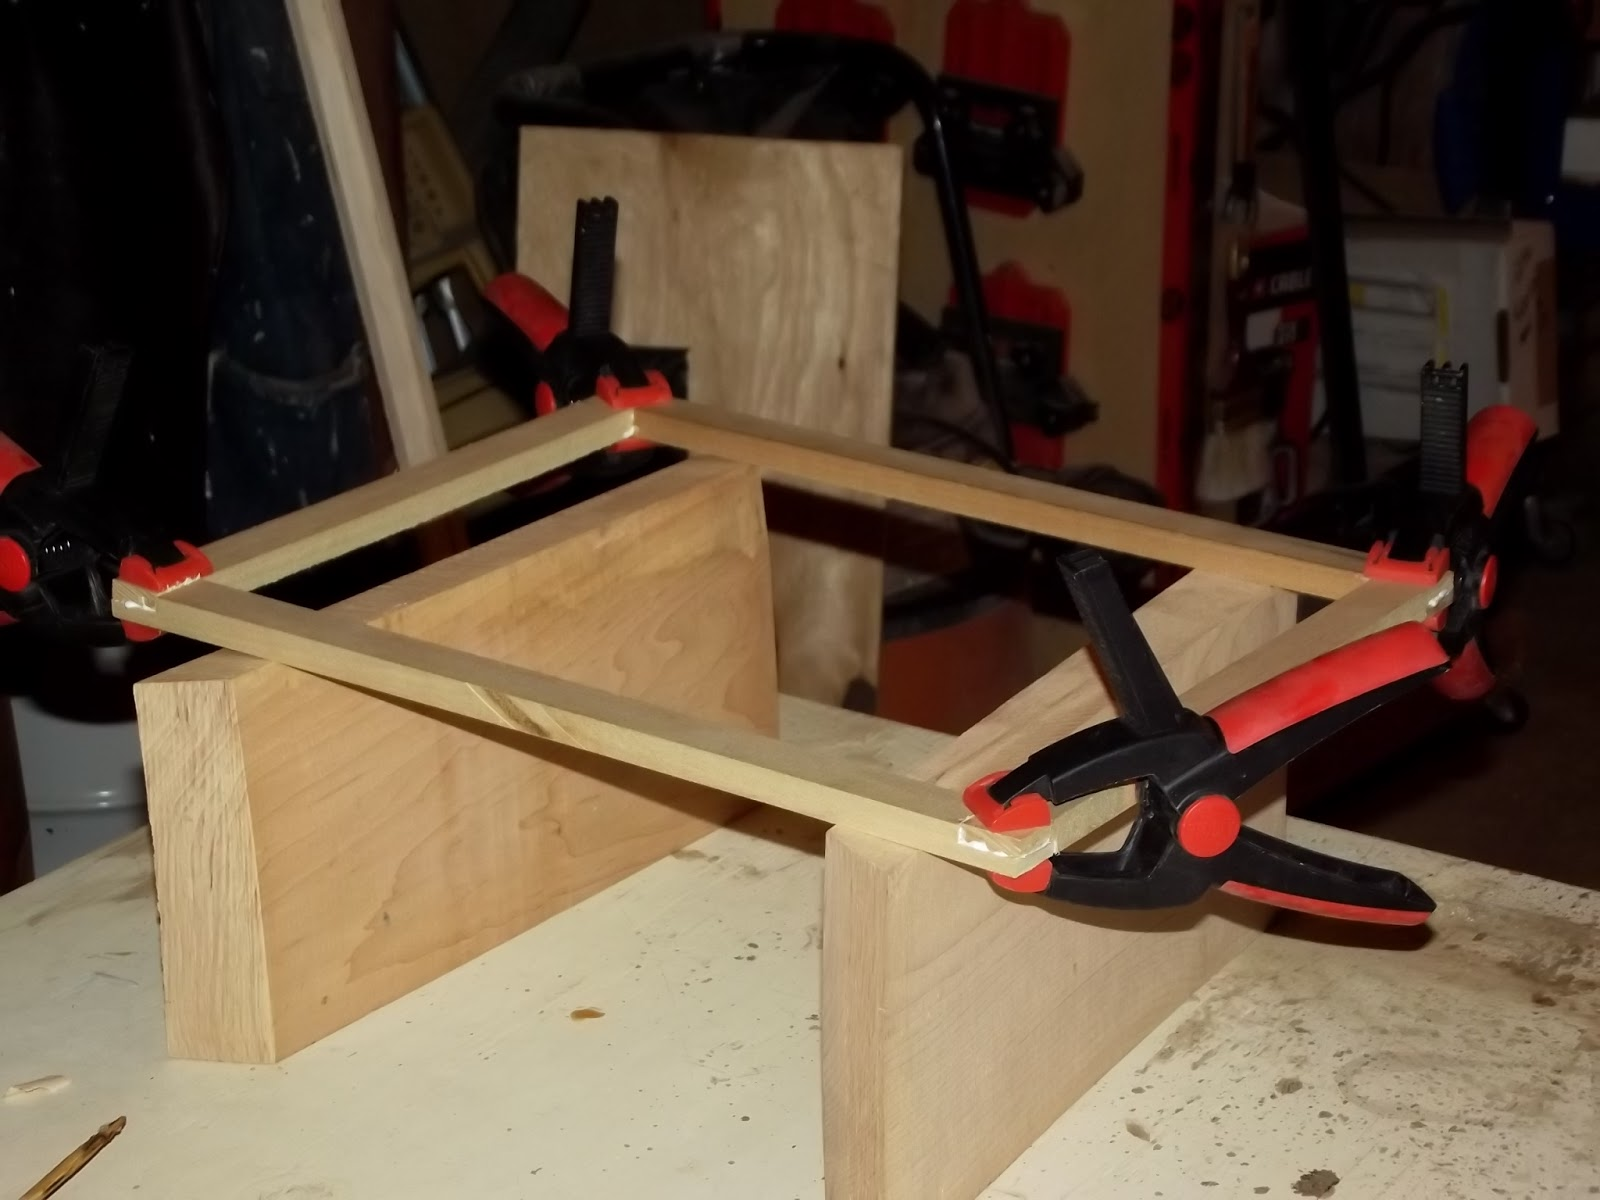 The tool store lap joints a puzzle and relief